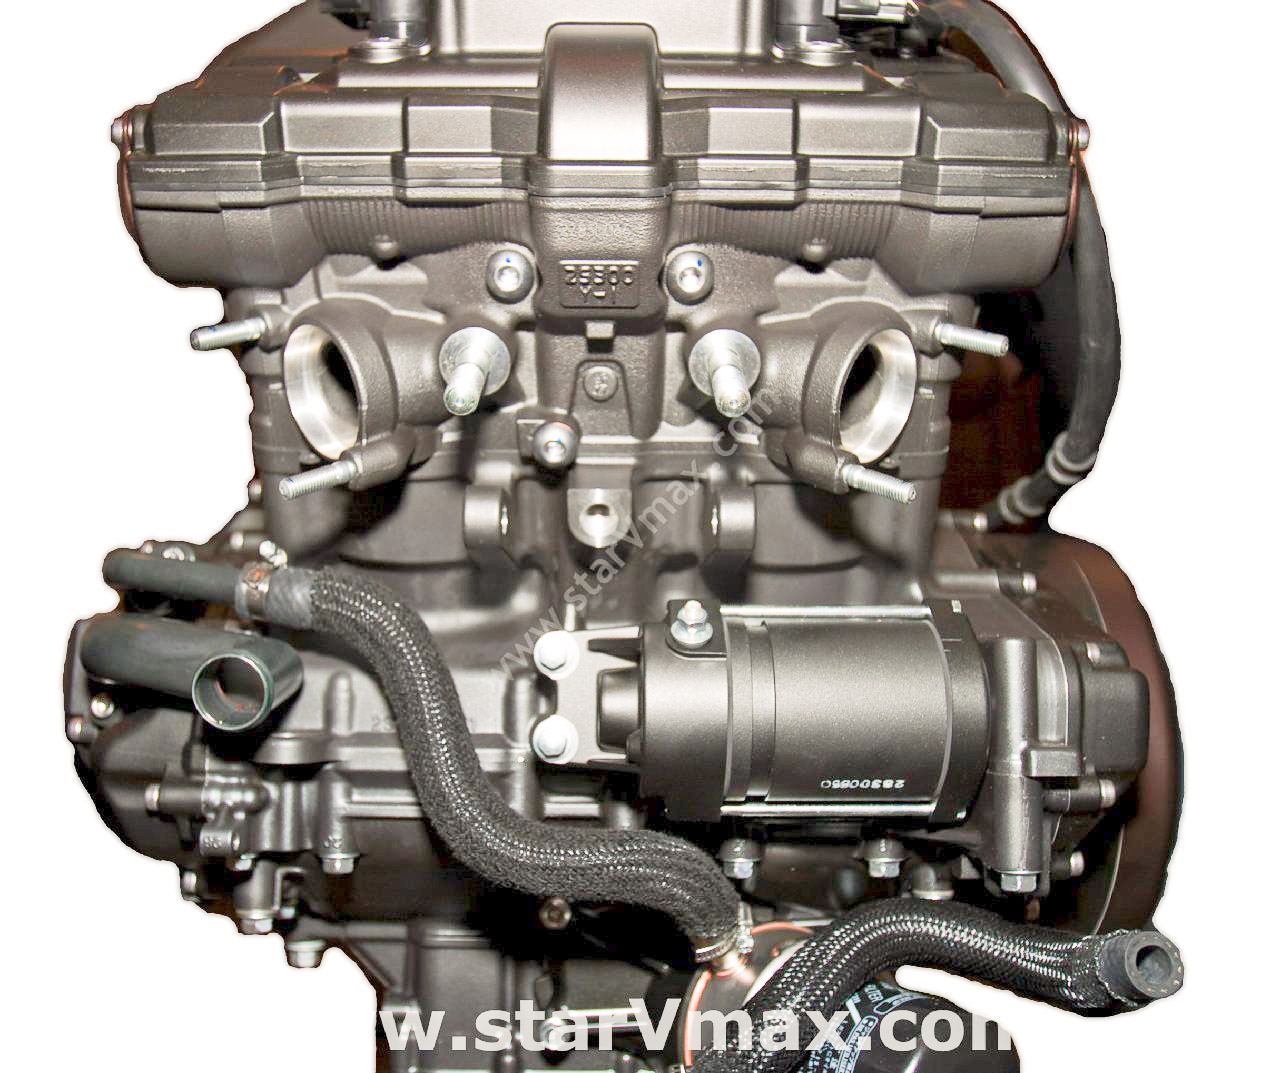 hight resolution of vmax engine weight dimensions 4 years 5 months ago 16